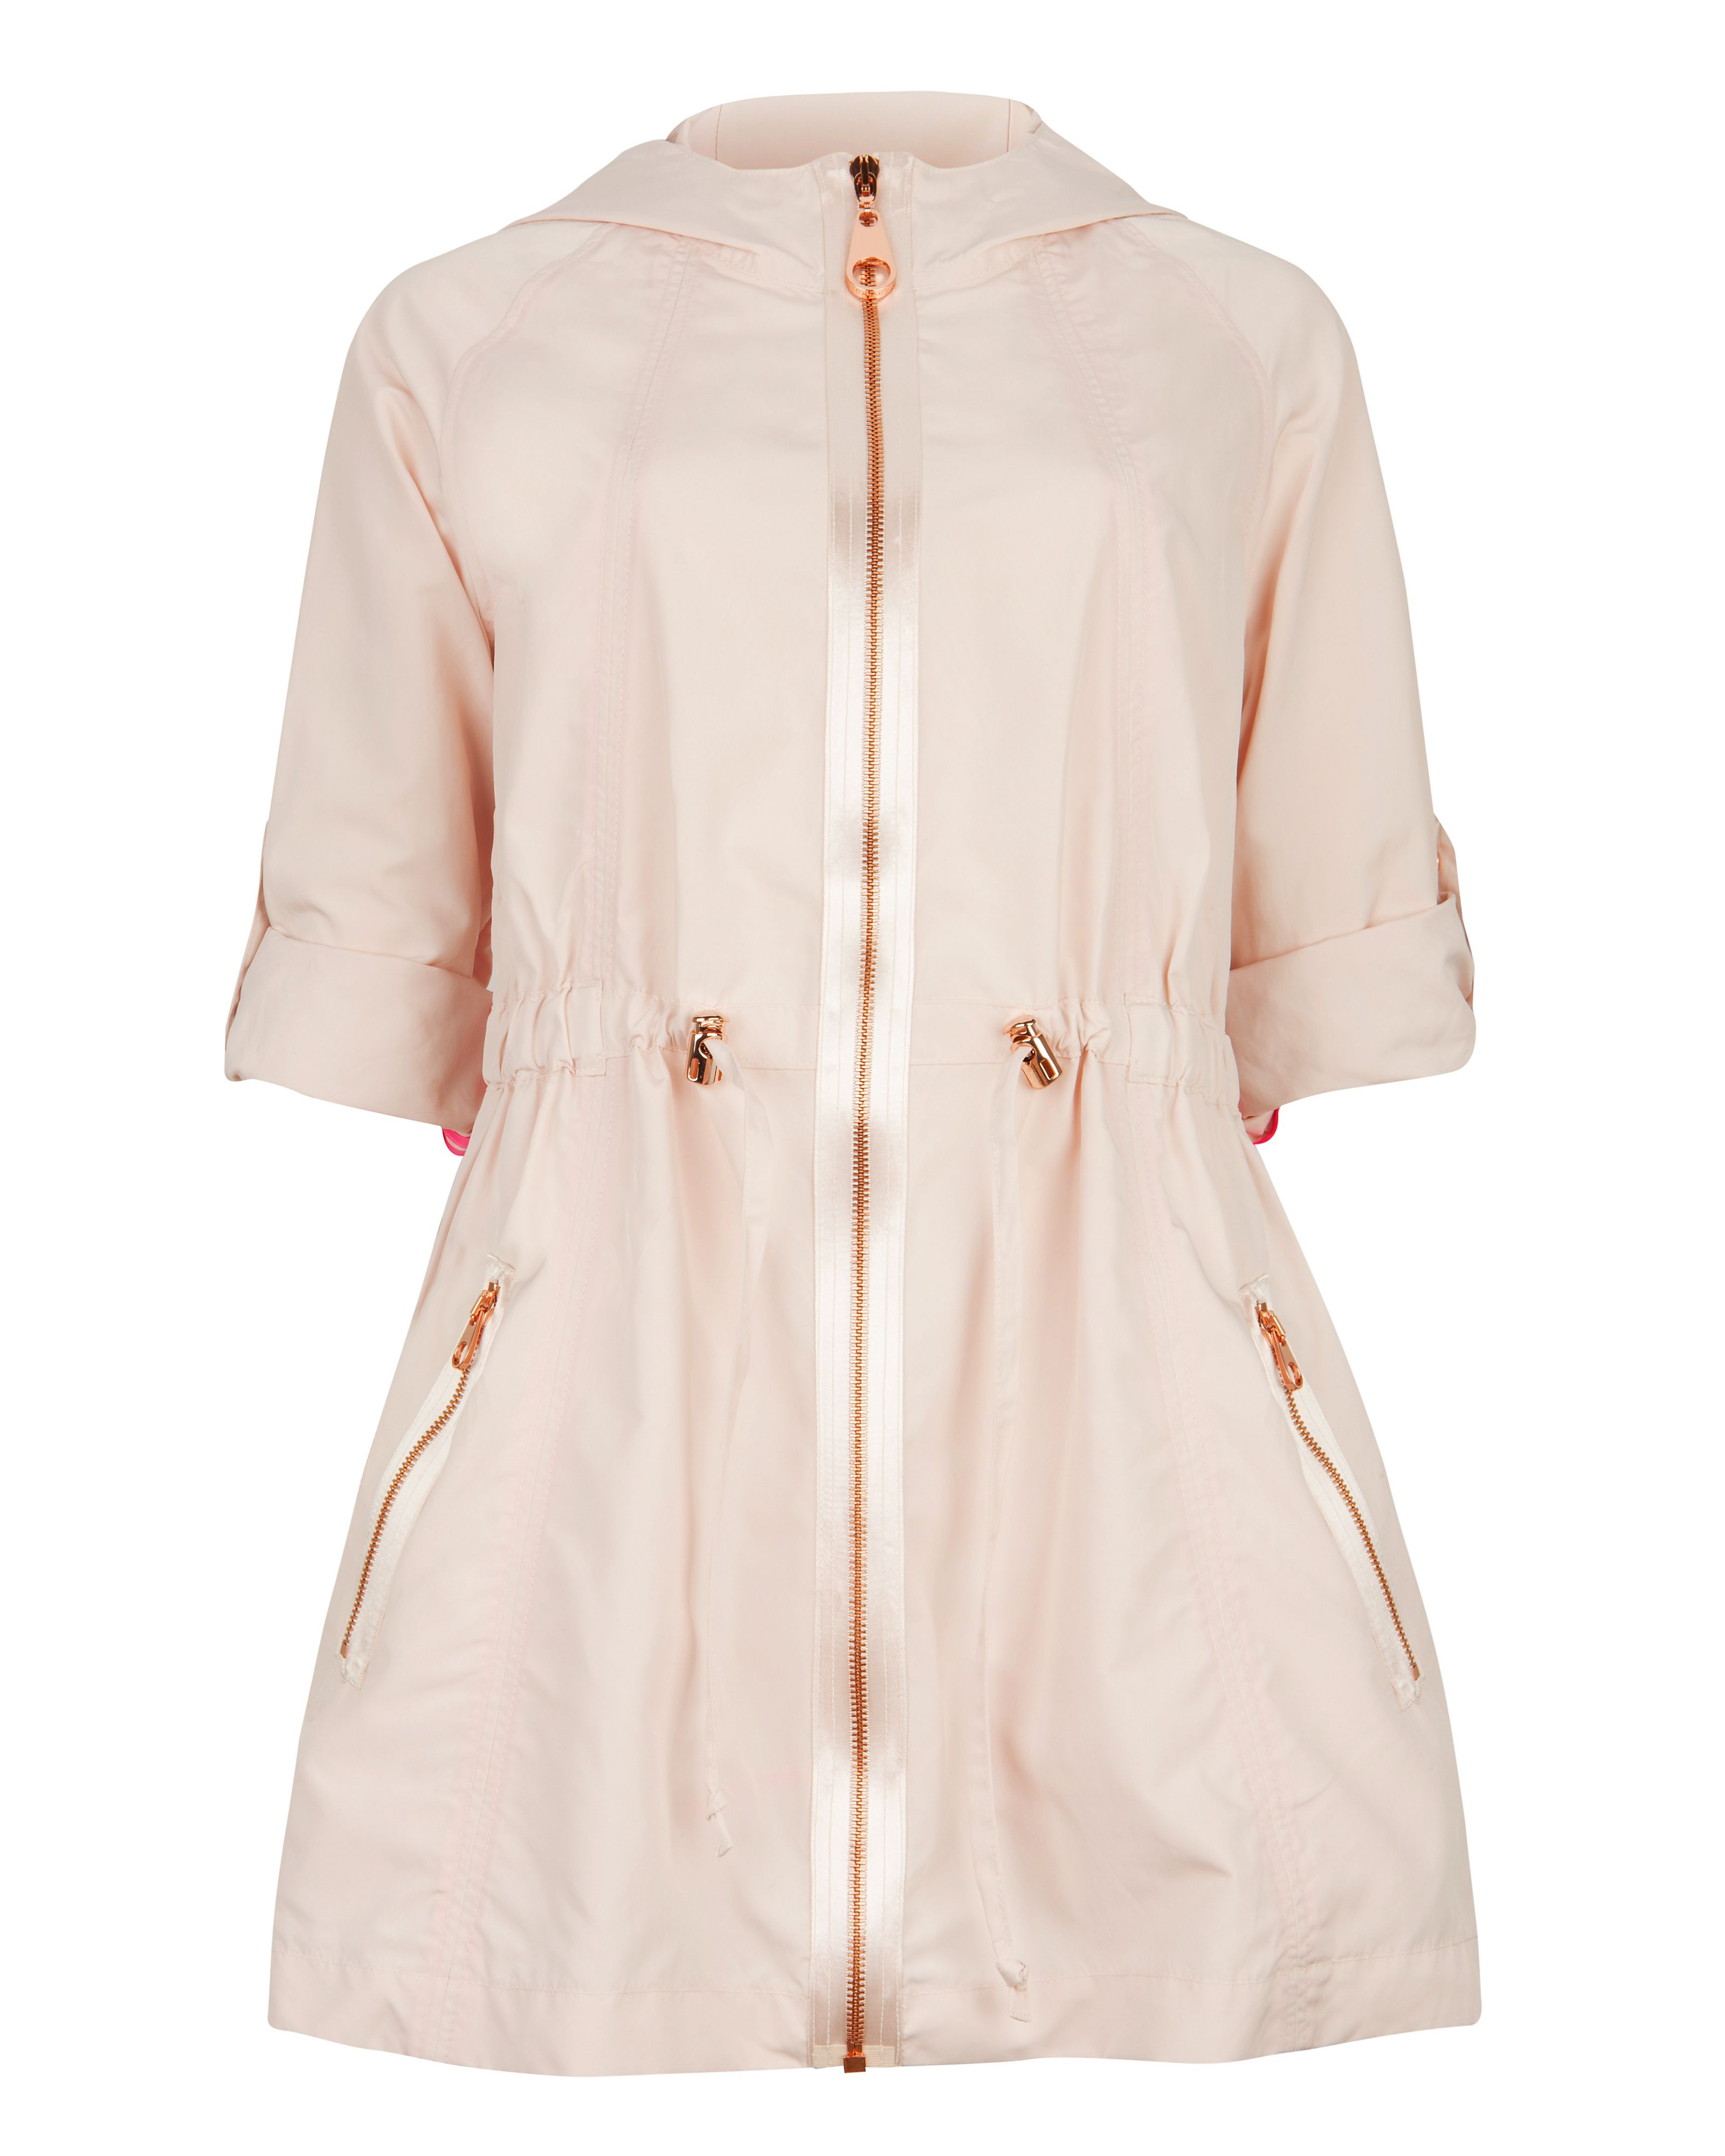 Naaomi zip detail swing jacket